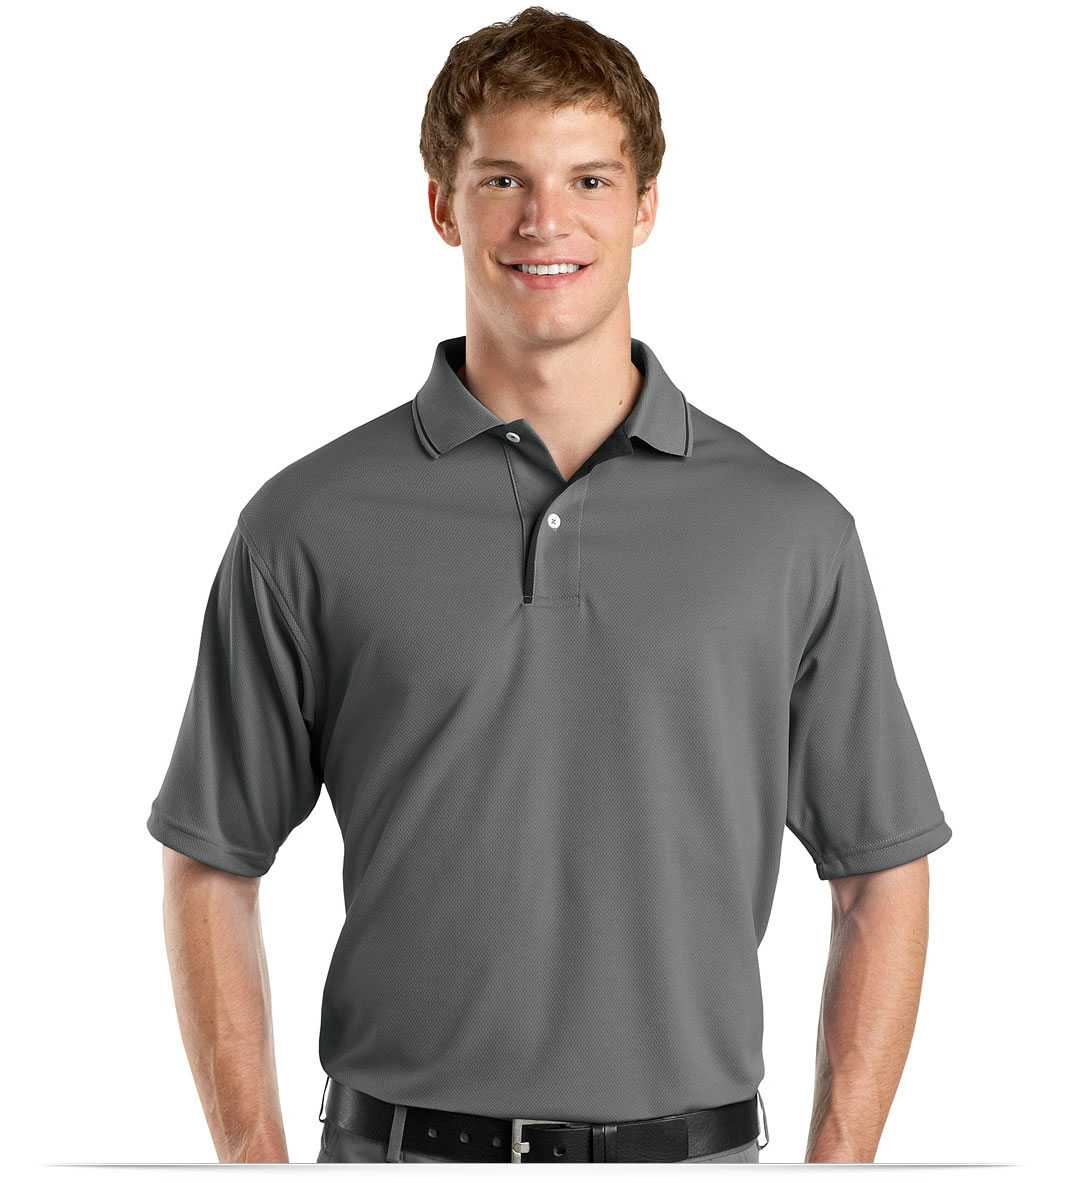 Design Embroidered Dri Mesh Polo Shirt With Striped Collar Online